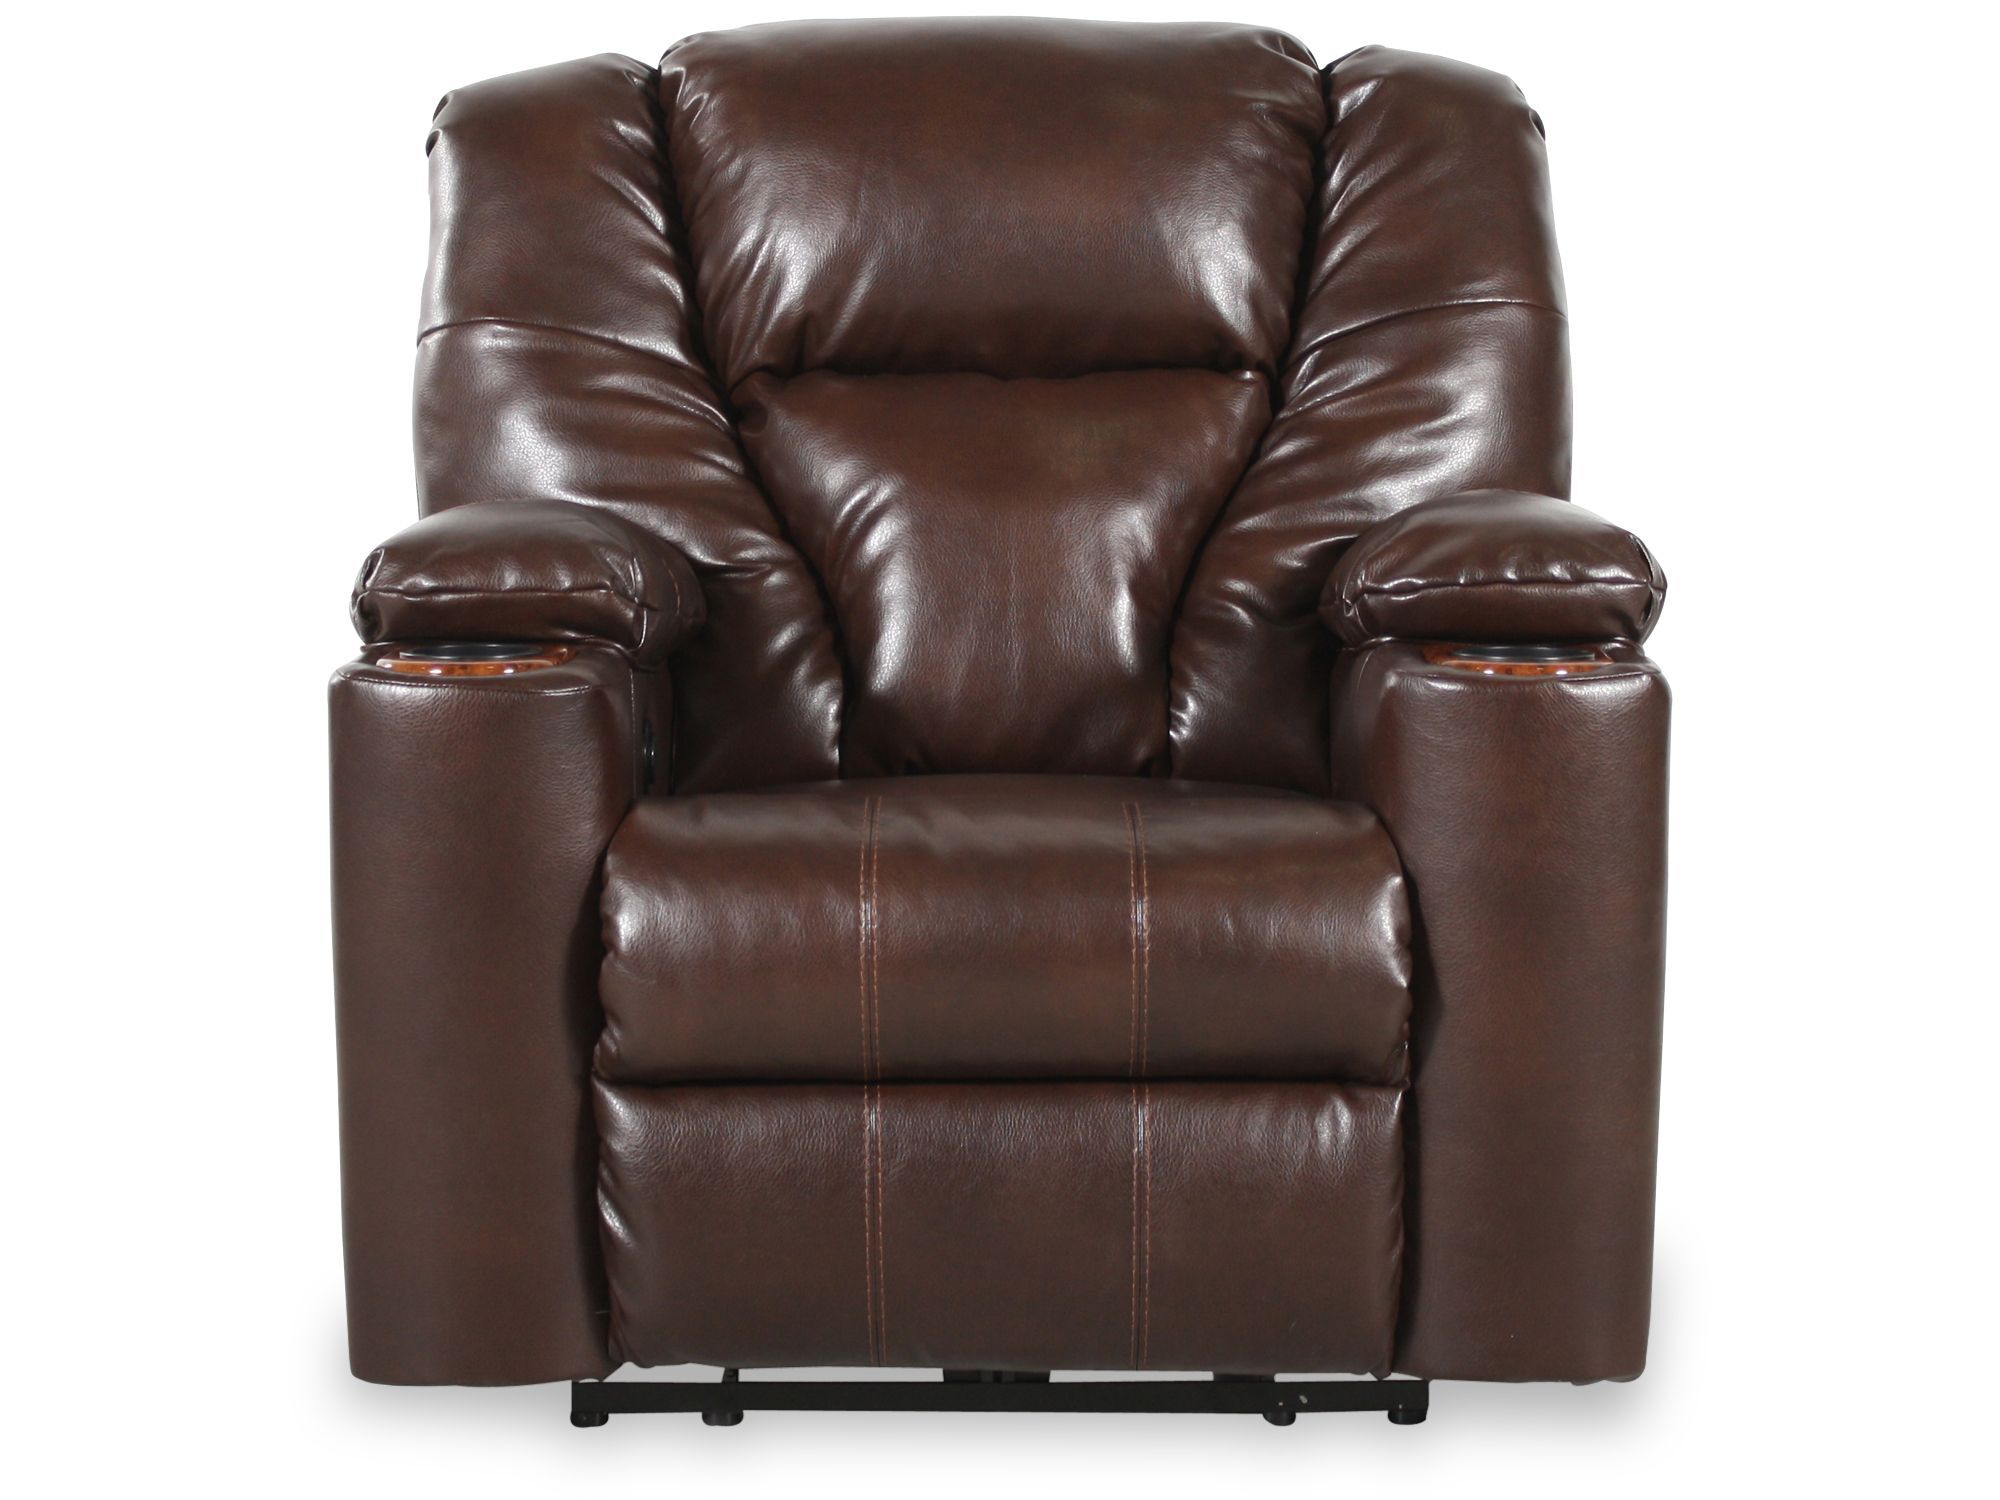 Home Theater Seating Mathis Brothers Furniture Stores